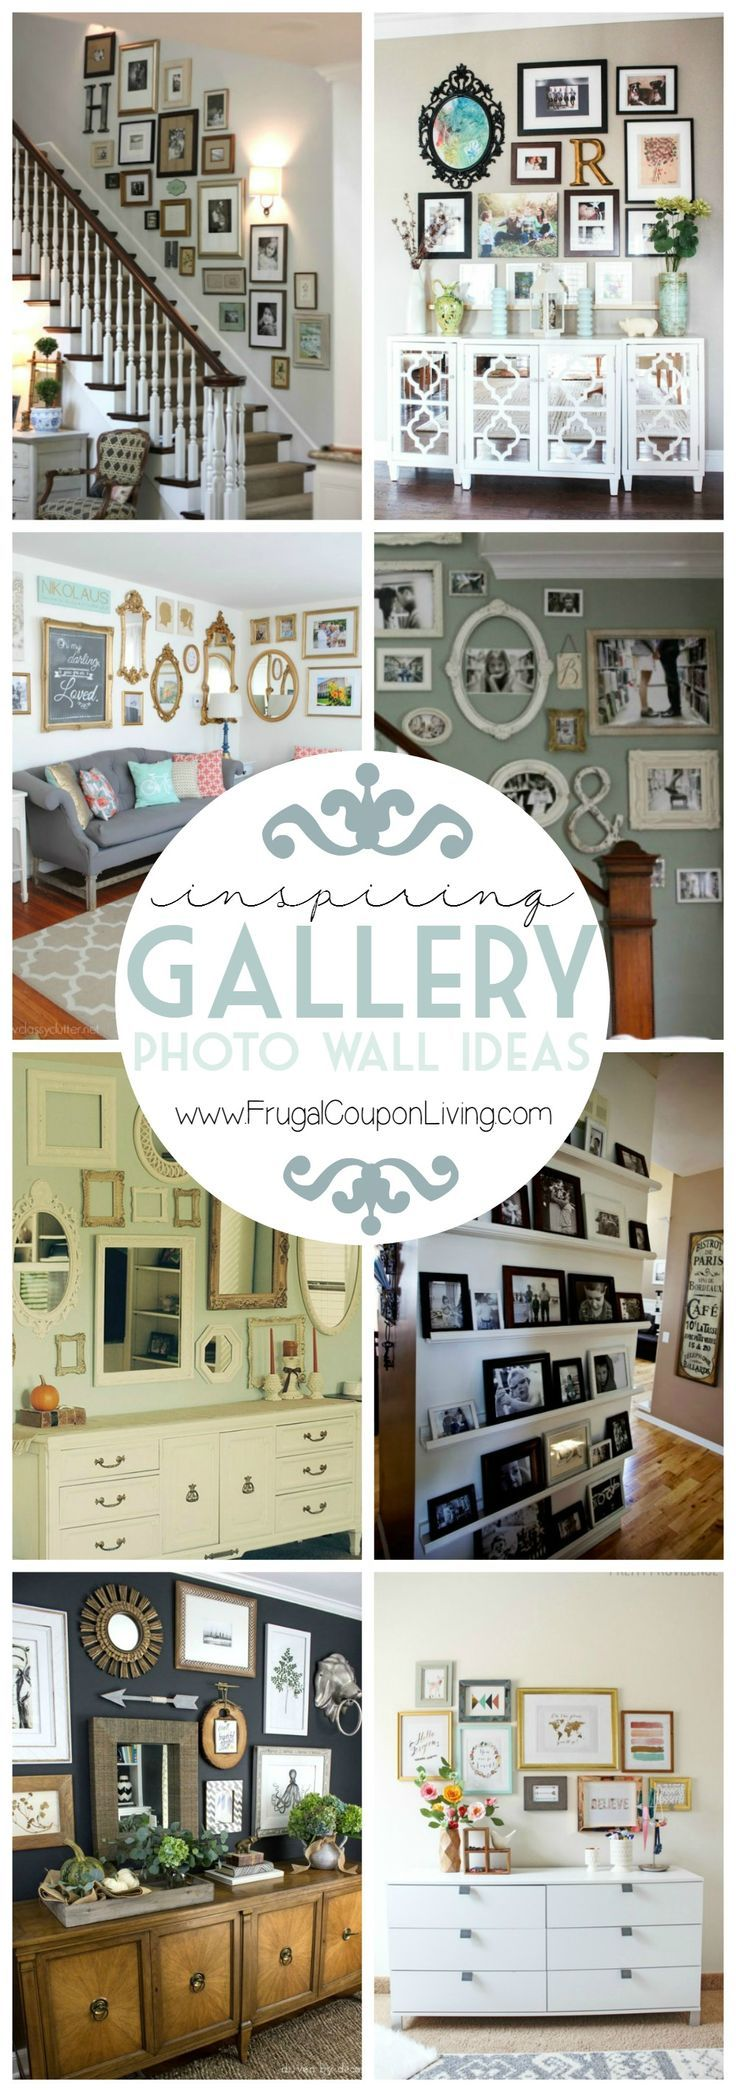 Create a Gallery Wall - Ideas for Picture Frame Displays | DIY ...